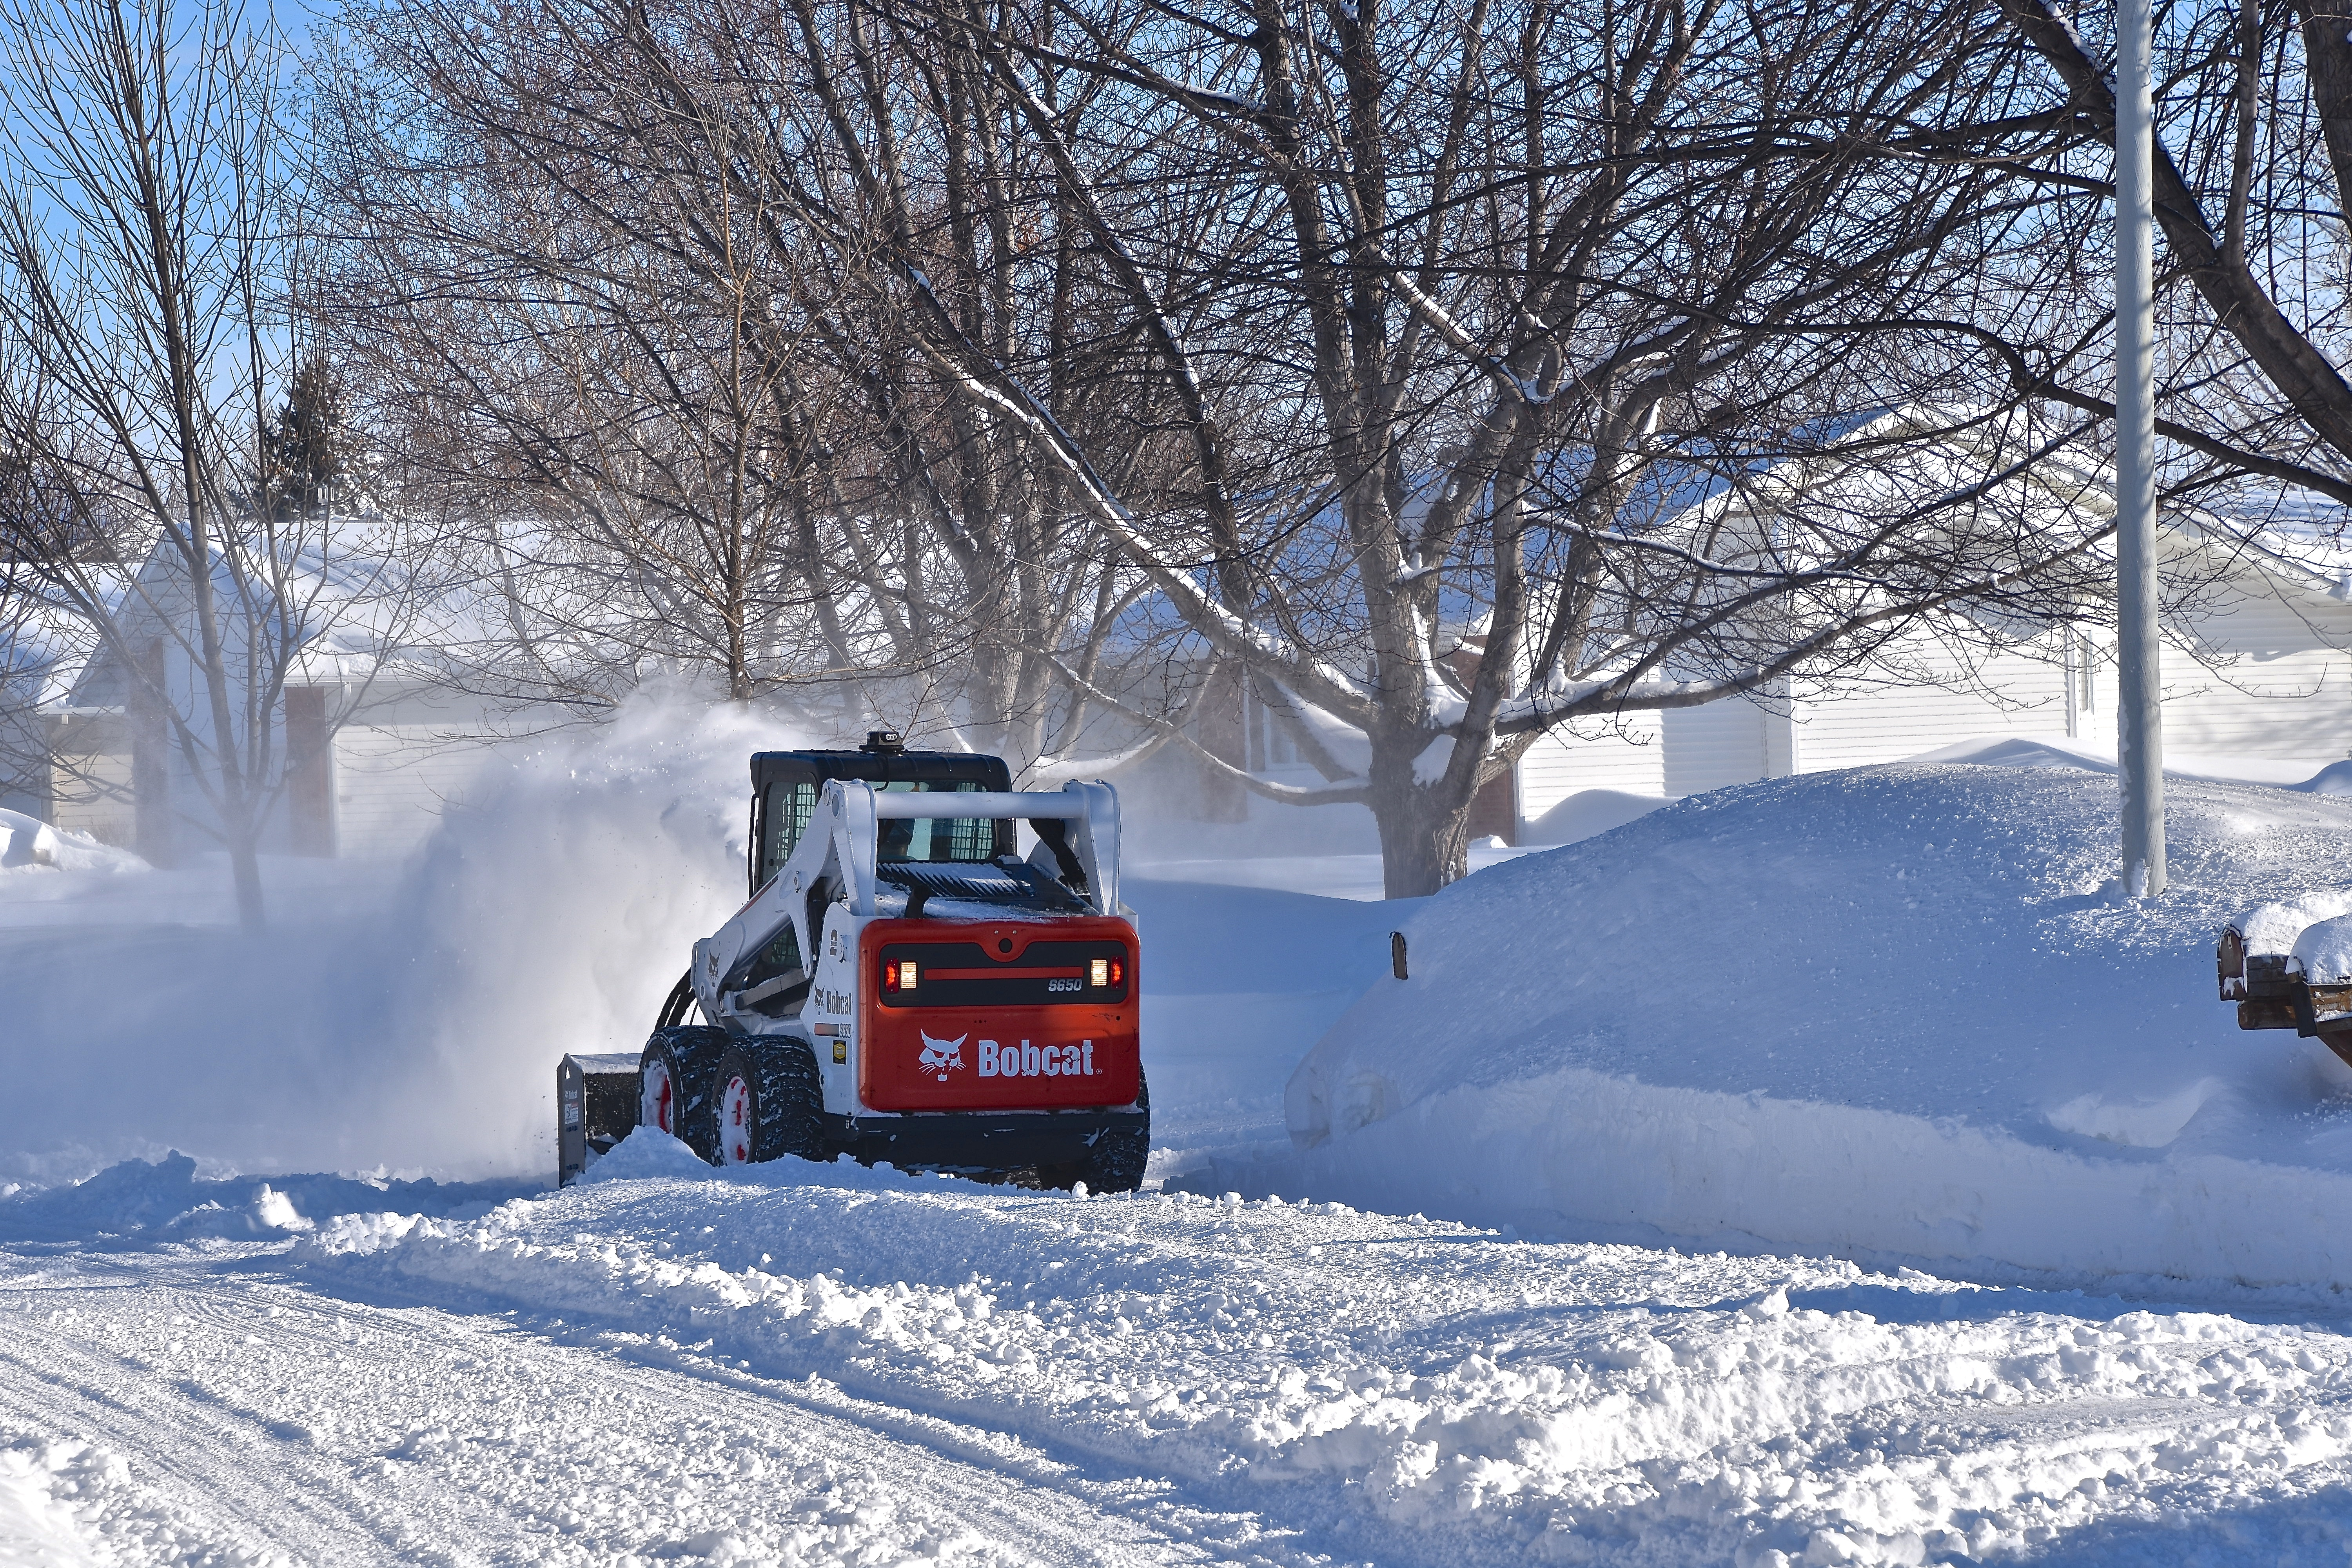 Snow removal after a winter storm in an HOA neighborhood.